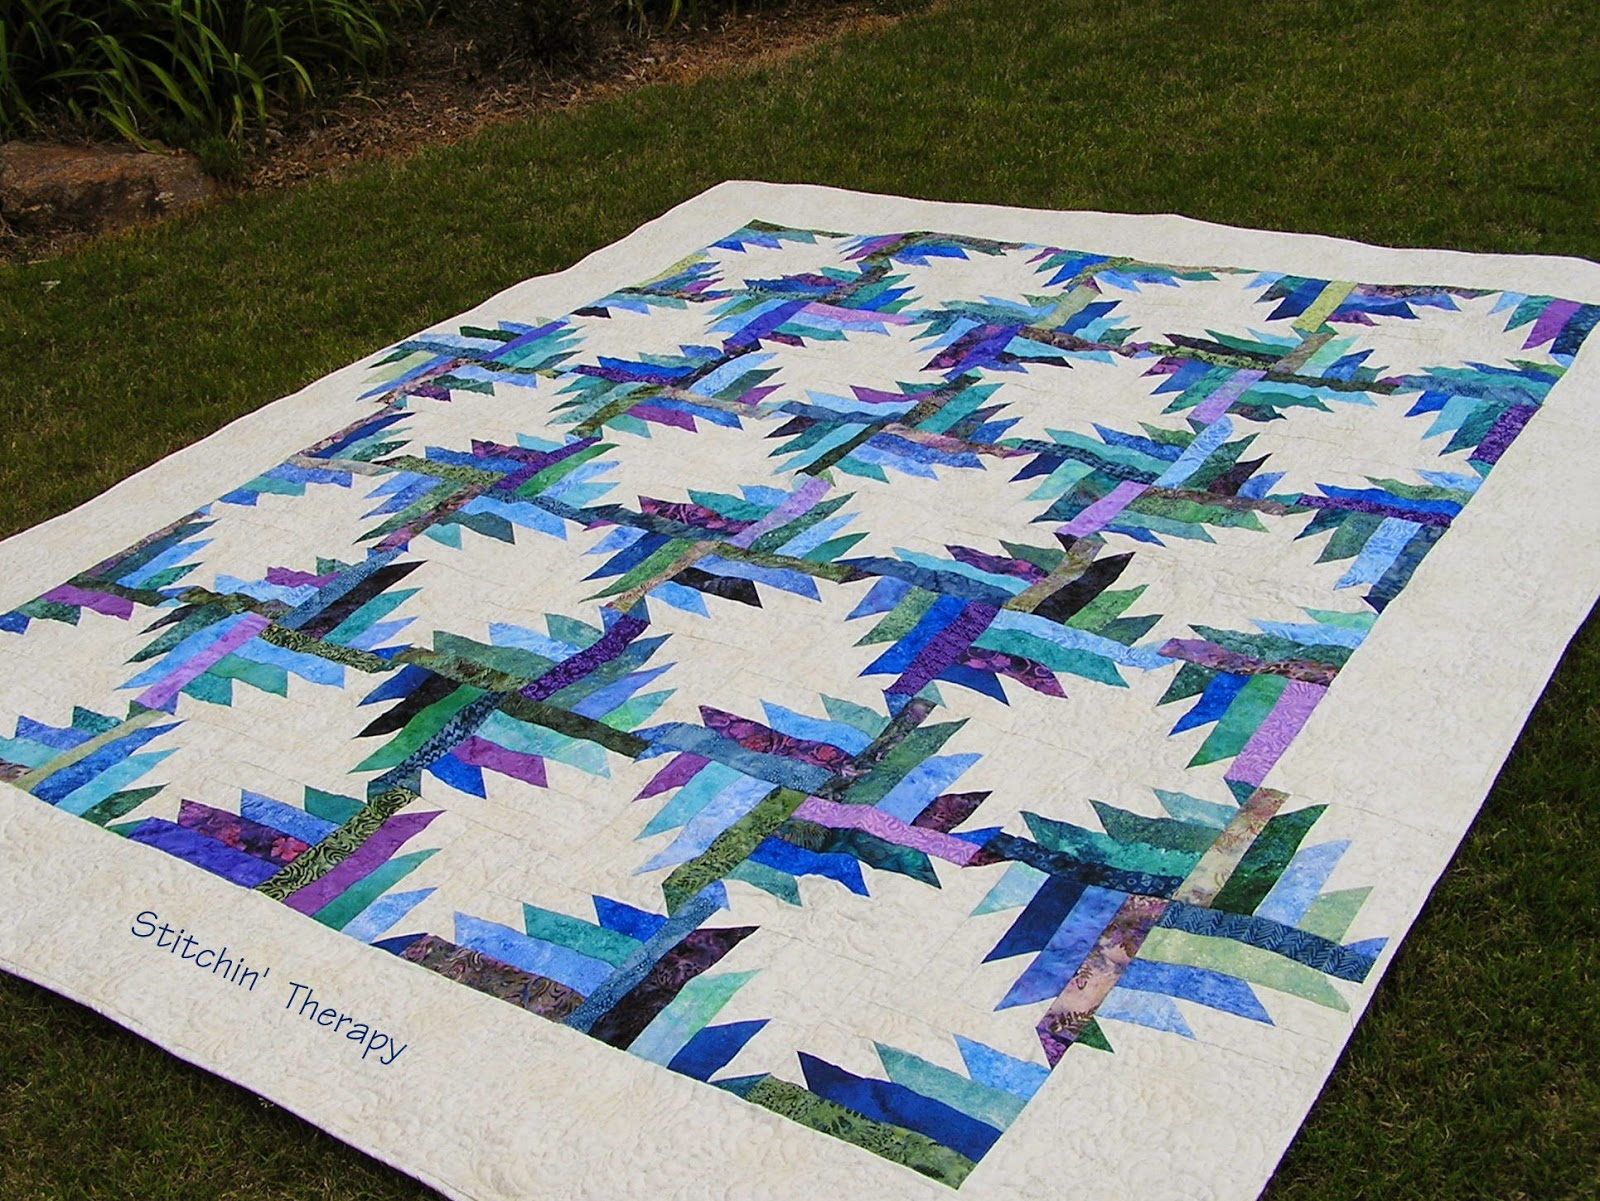 Stitchin Therapy 2014 Quilts